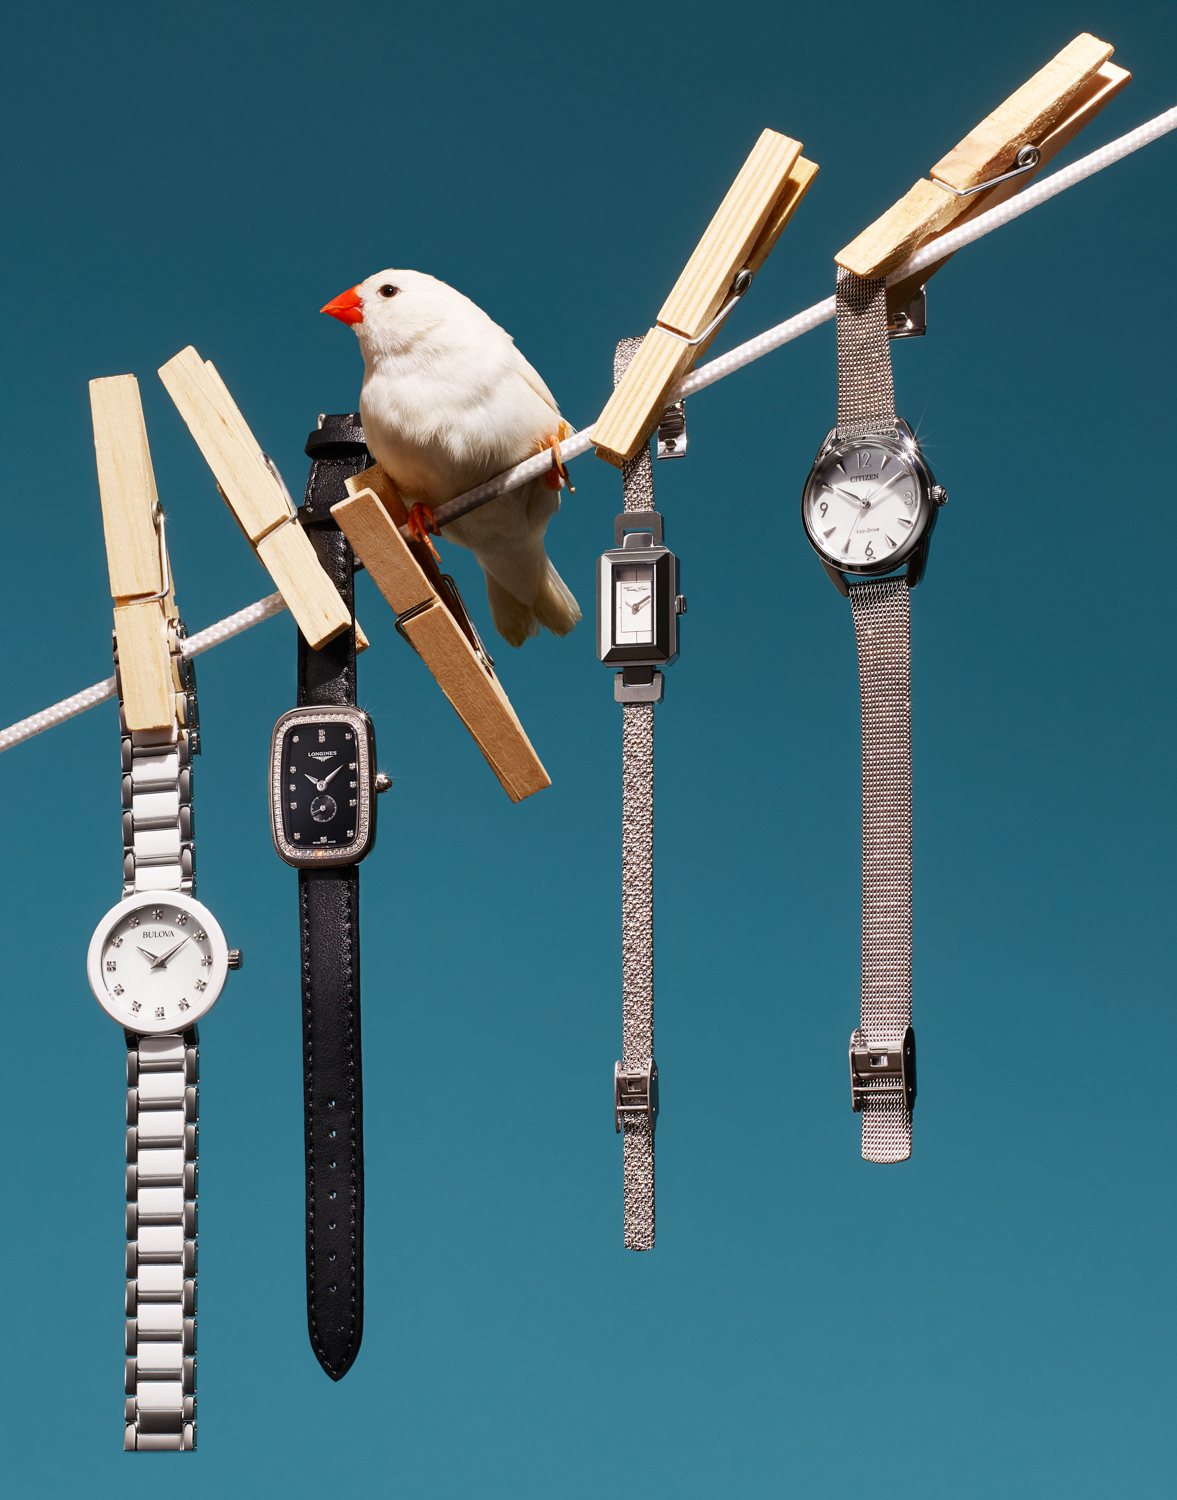 STY_13128_BIRD_1_WATCHES_copy.jpg